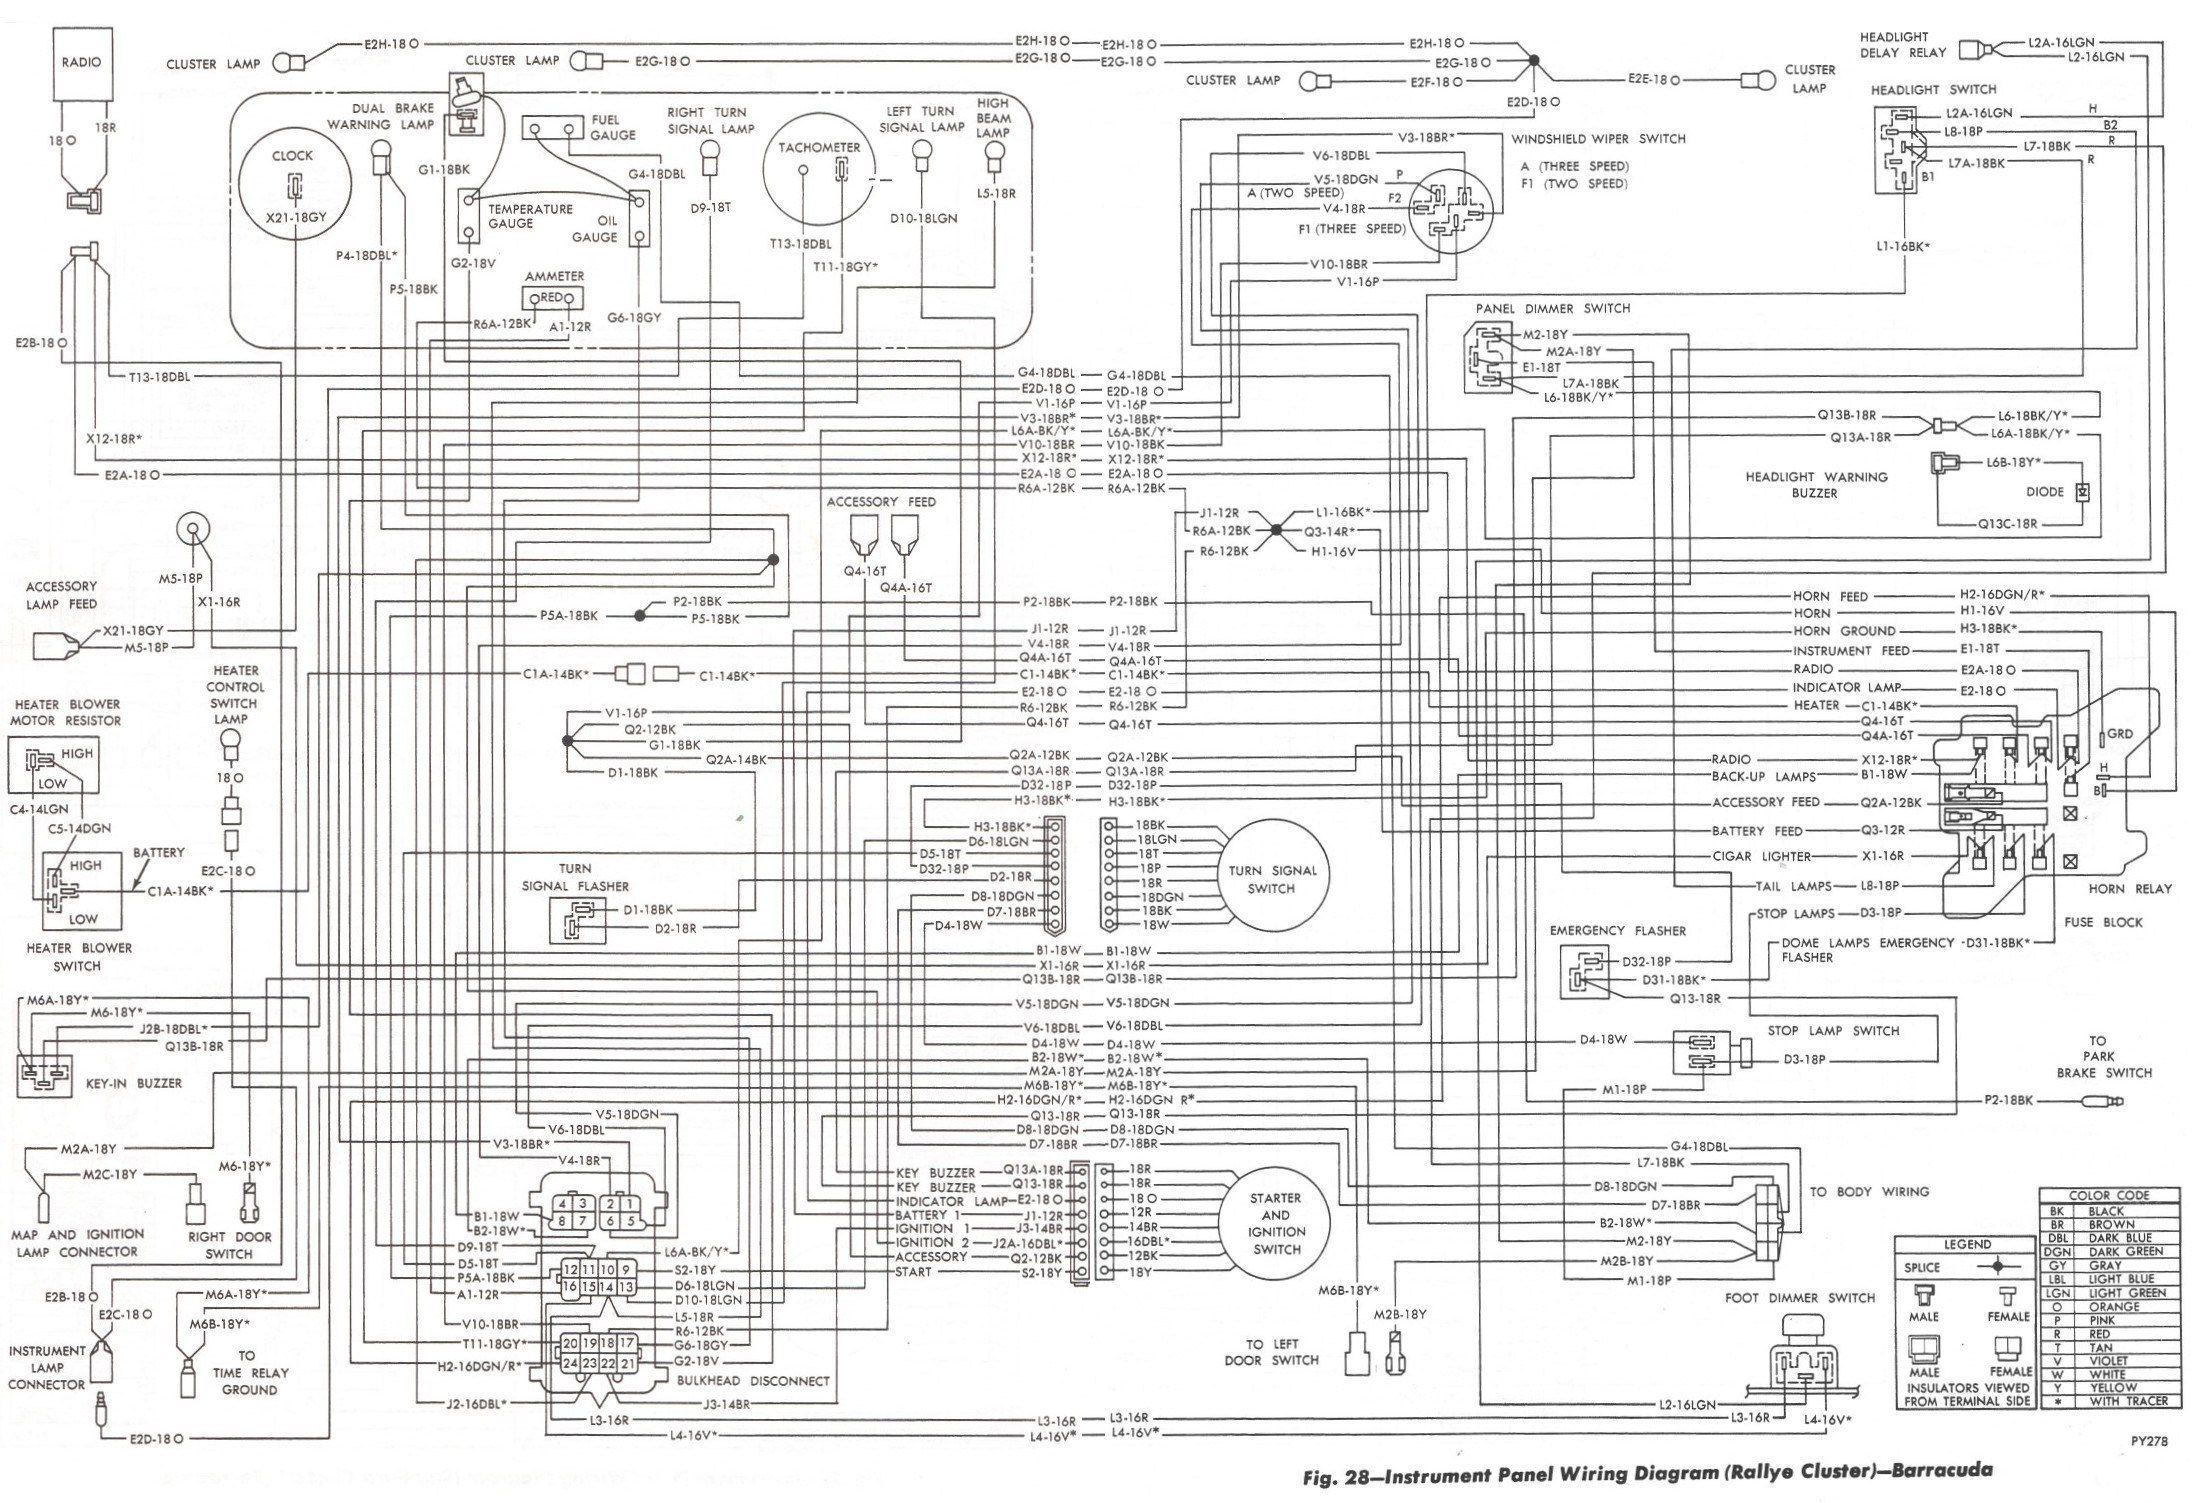 LF_7505] 1970 Plymouth Belvedere Wiring Diagram Color Download DiagramOupli Proe Mohammedshrine Librar Wiring 101